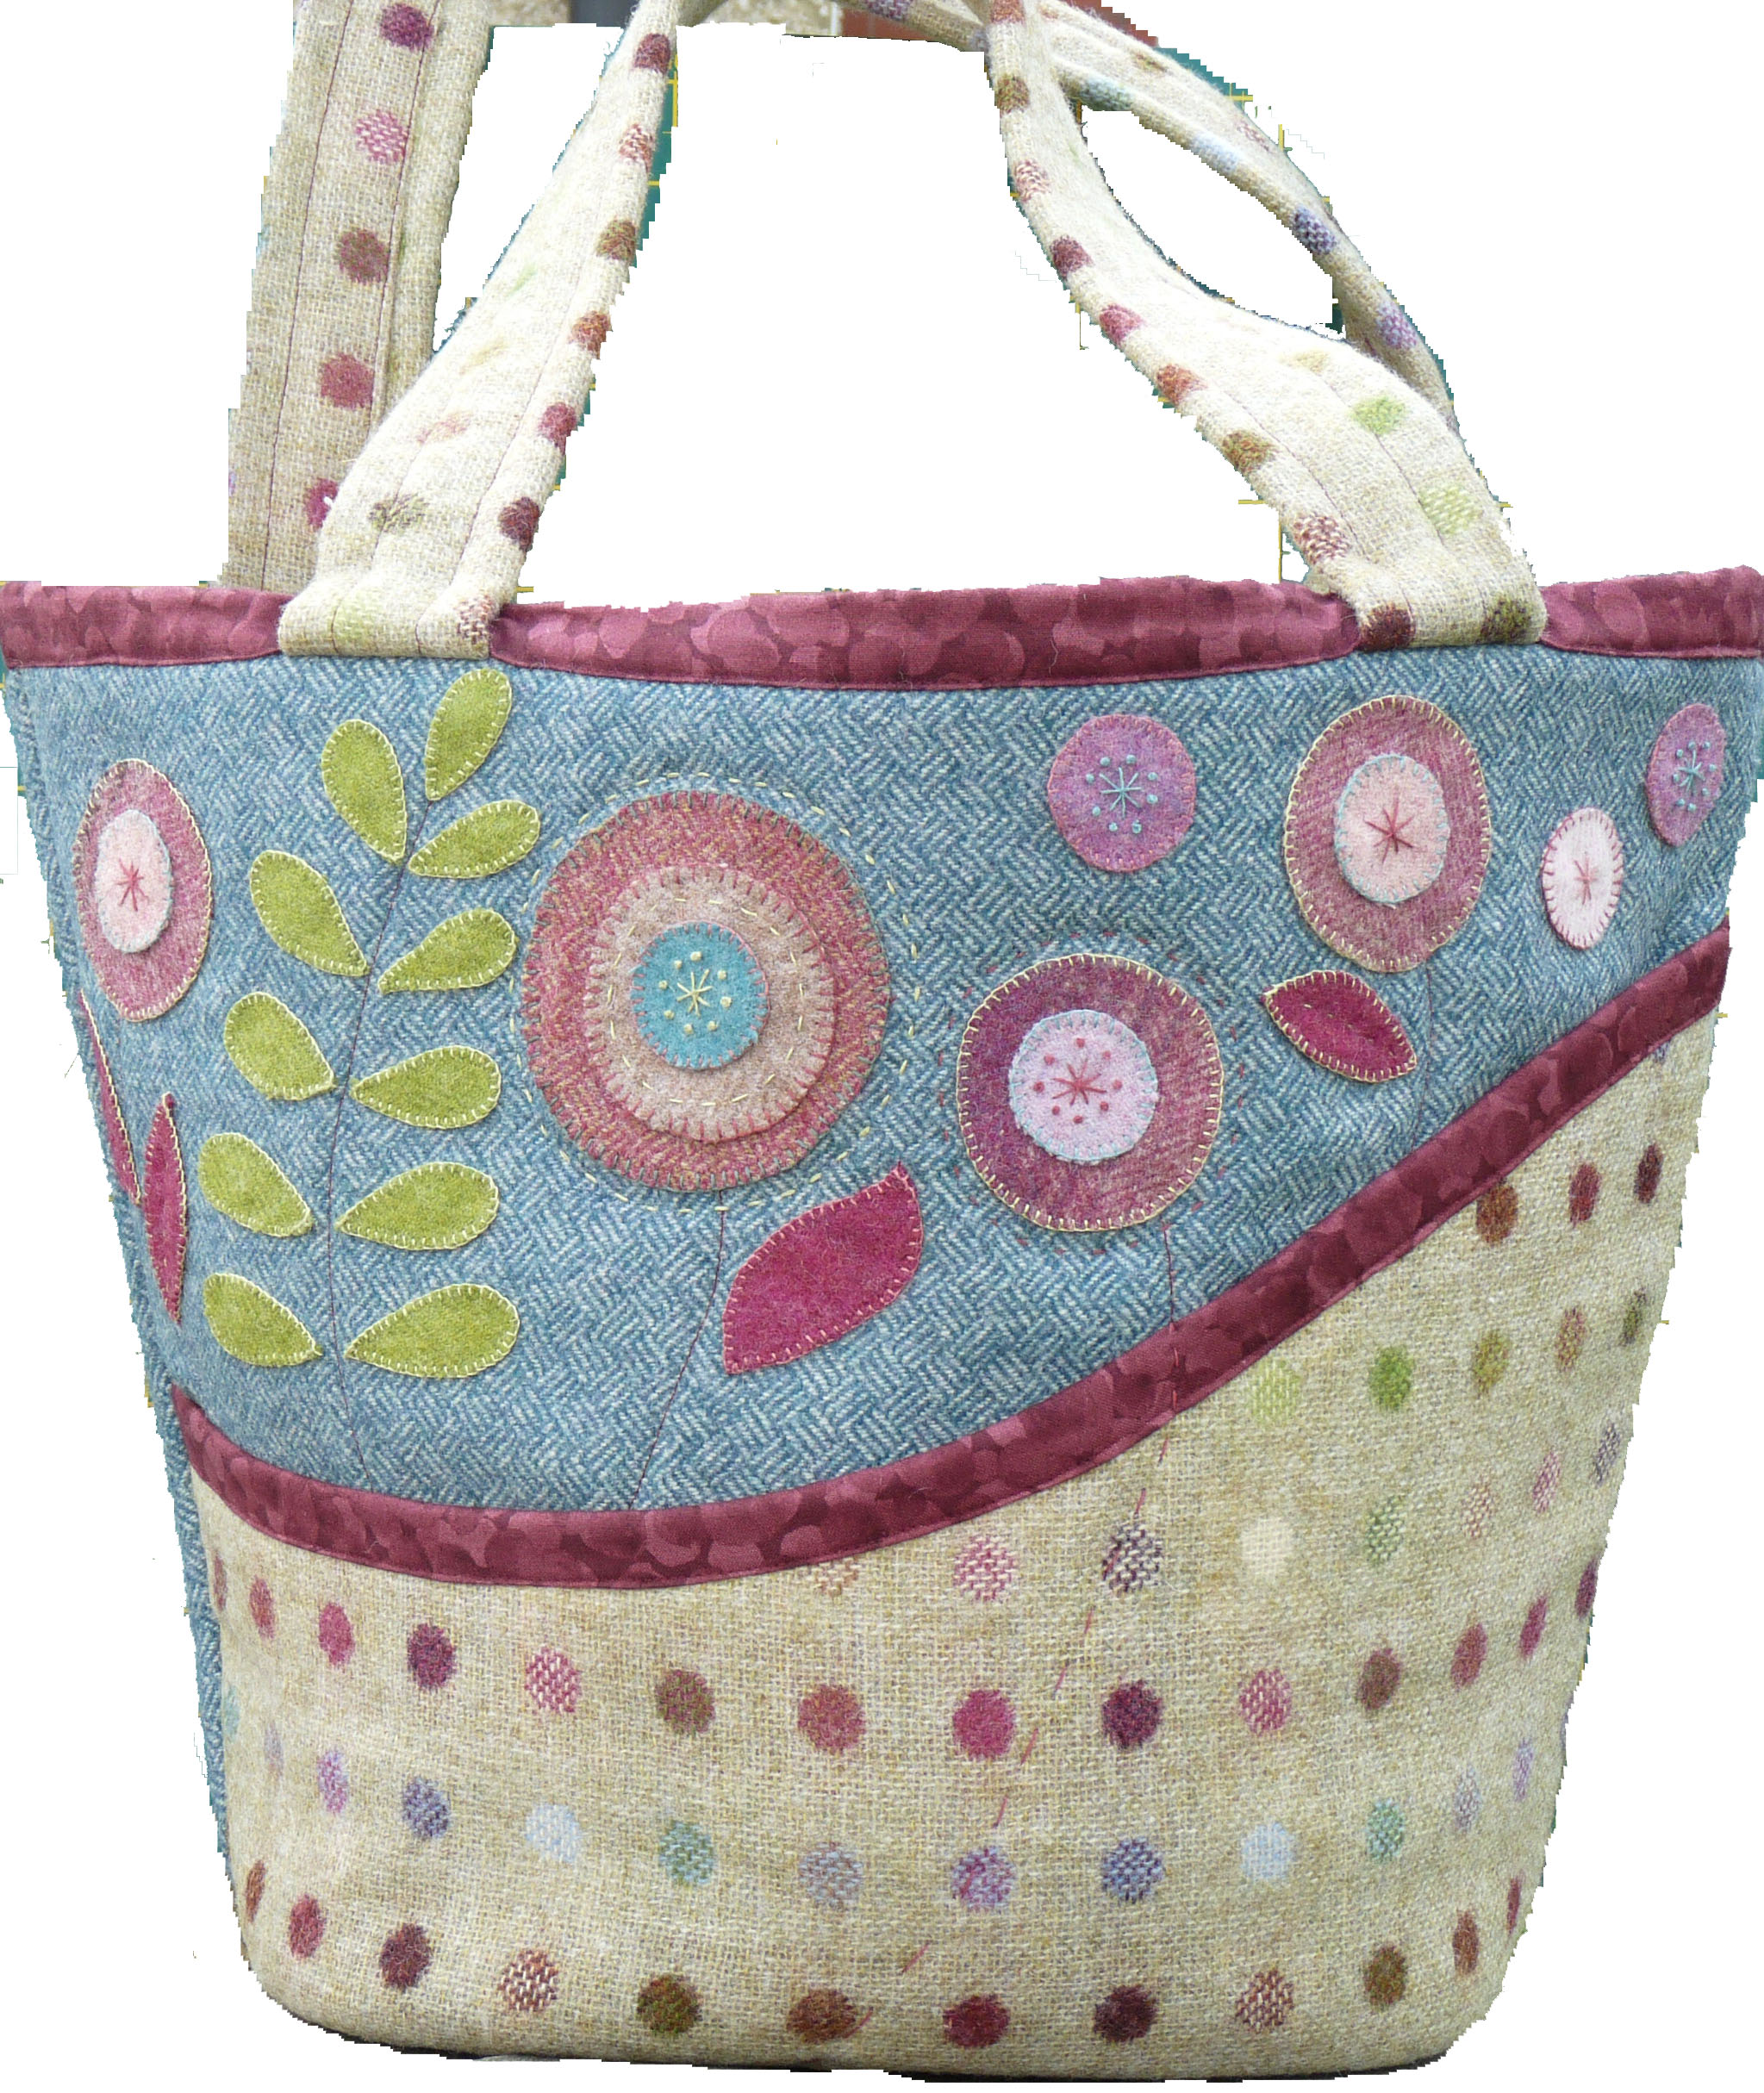 Absolutely Blooming Bag Sewing Pattern